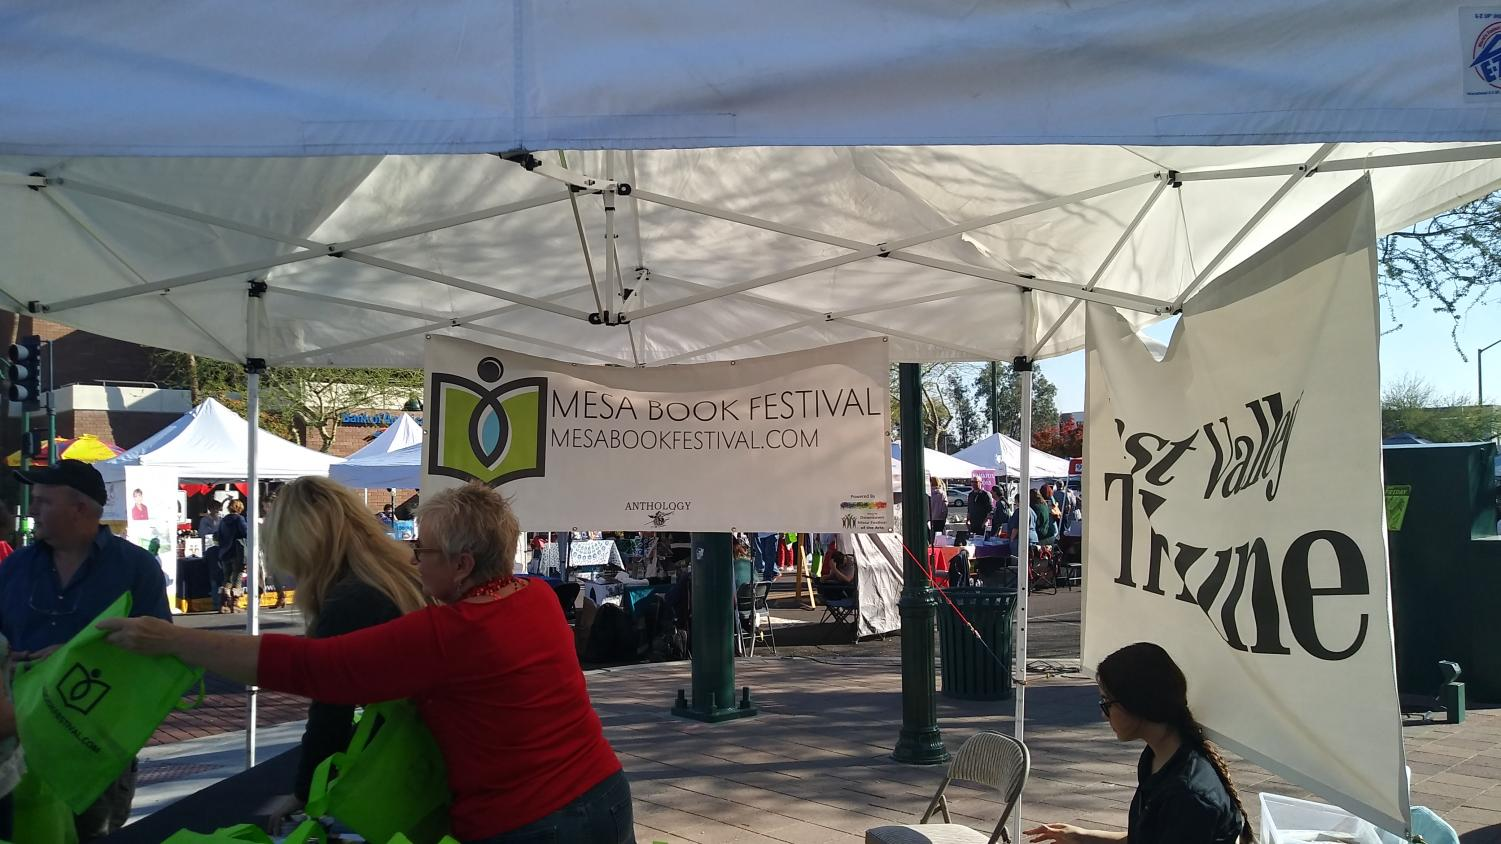 The 2018 Mesa Book Festival in Downtown Mesa